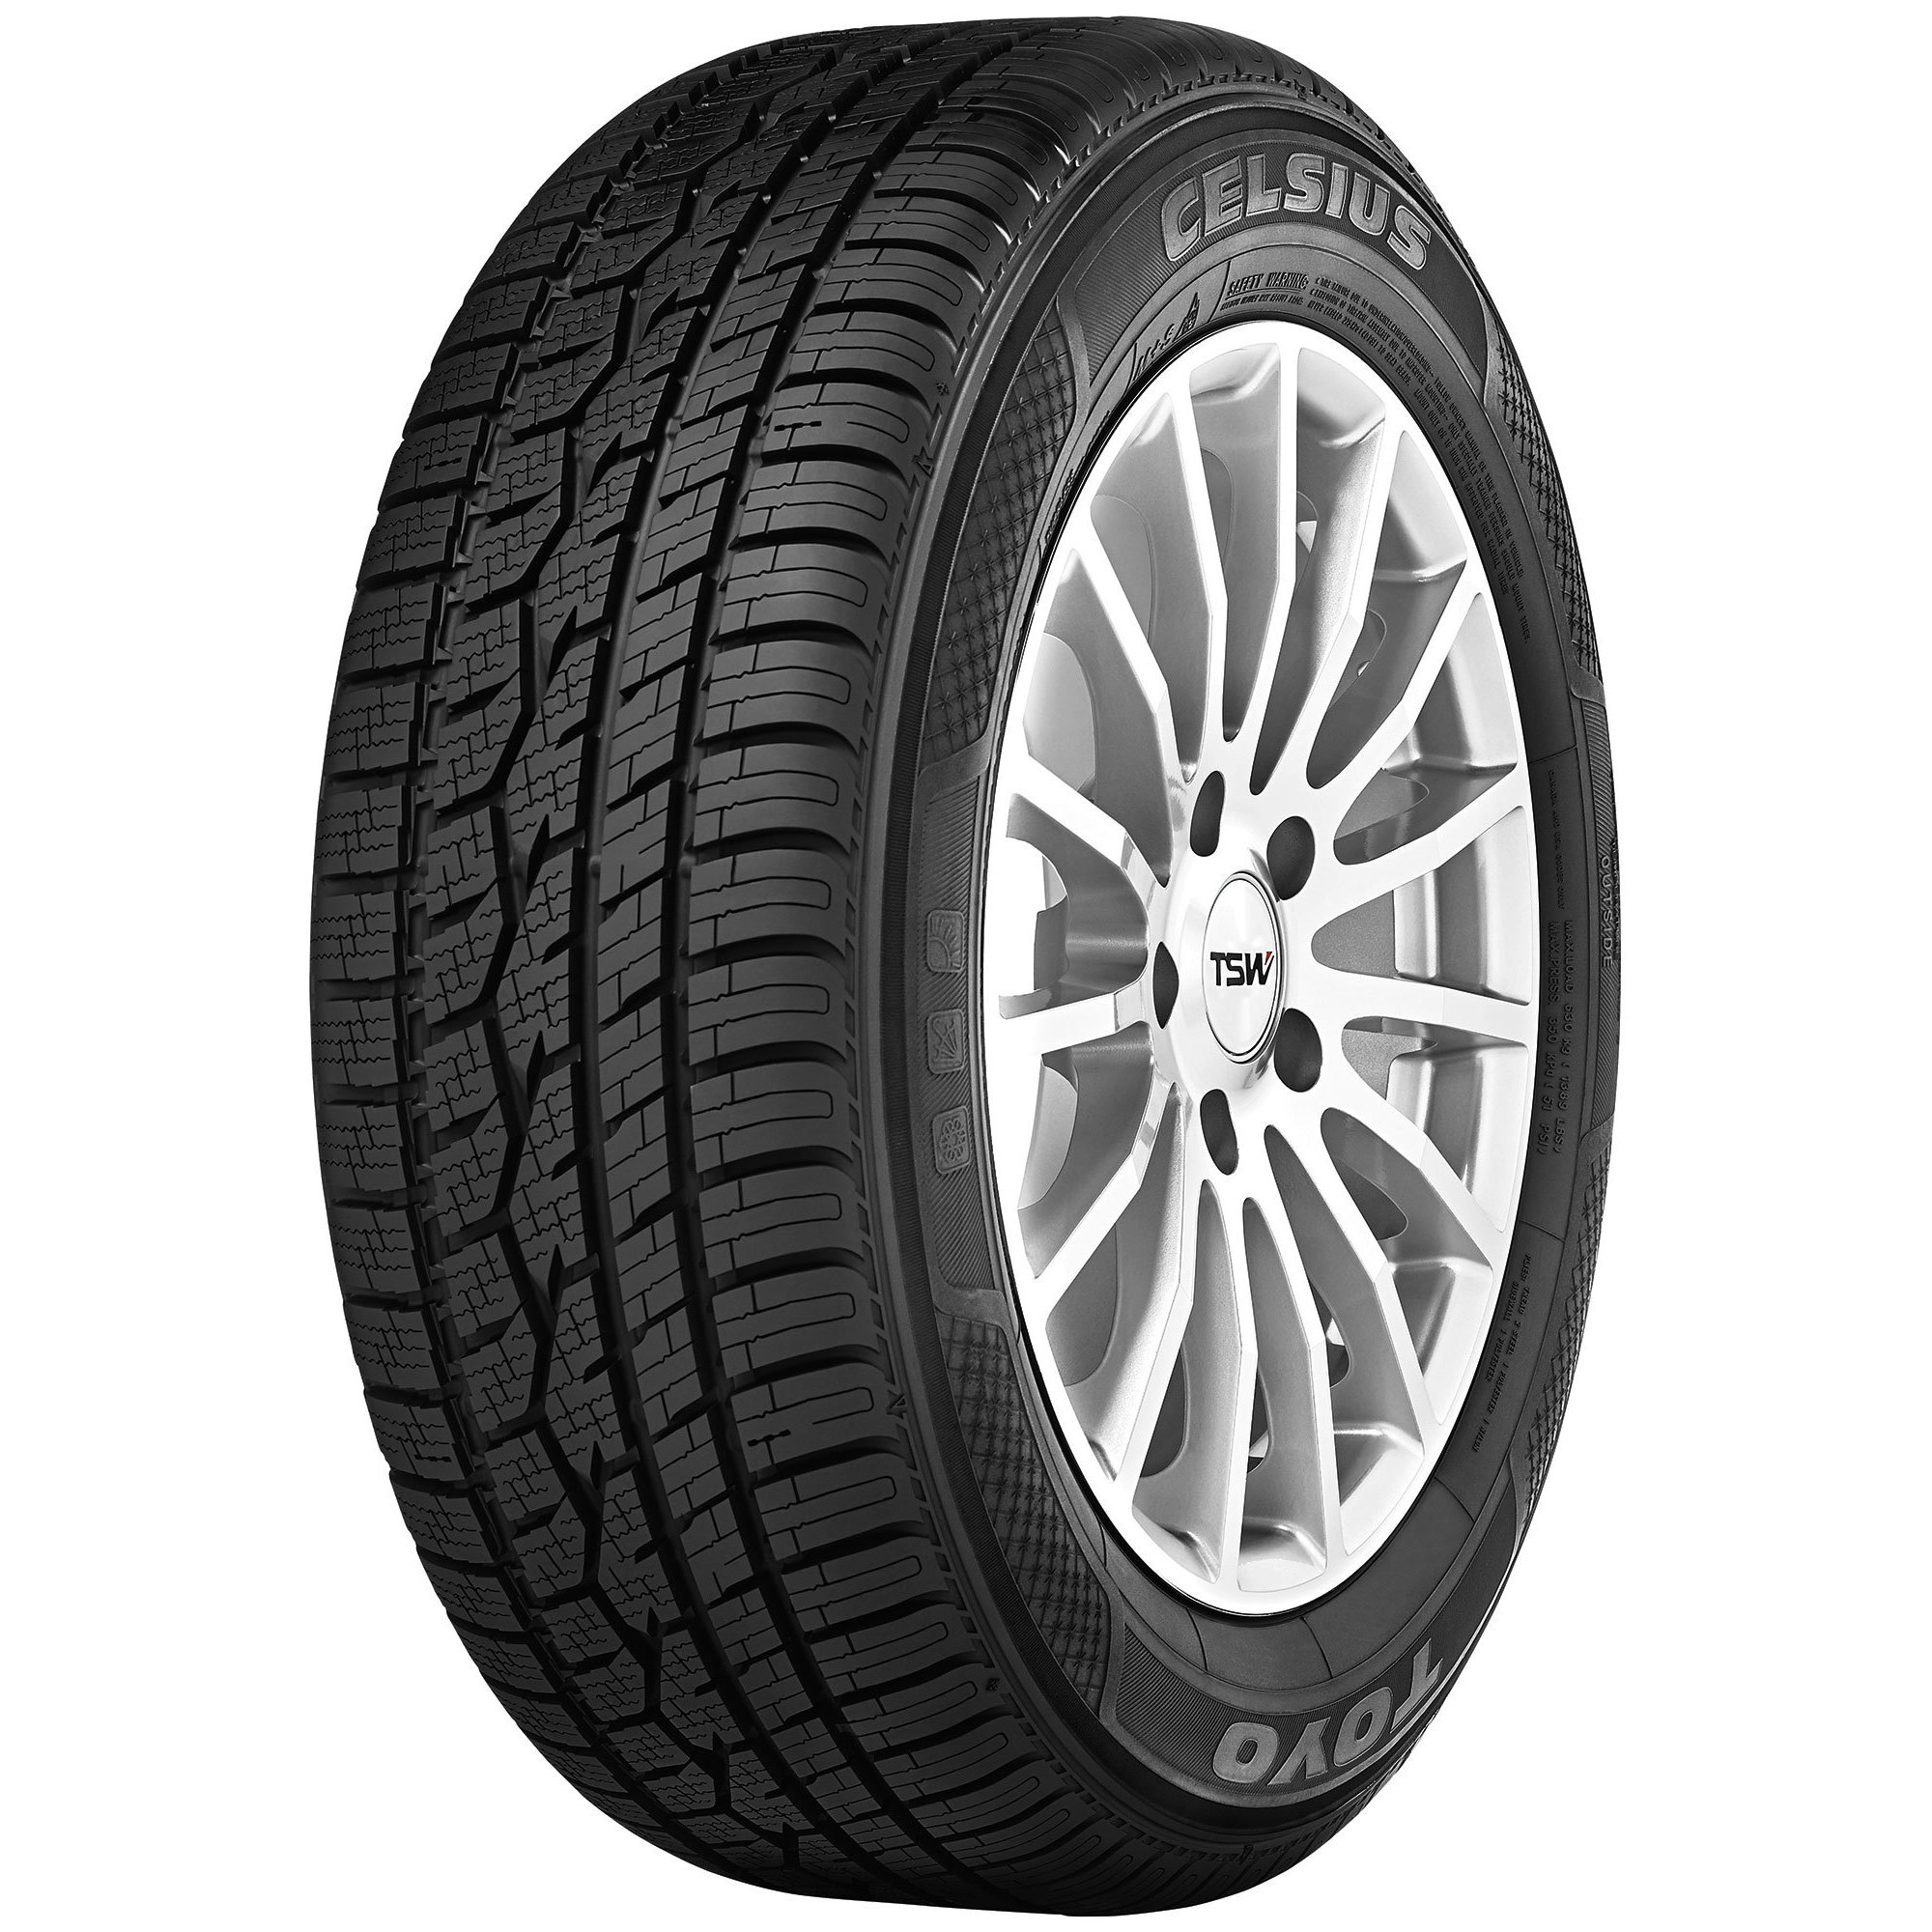 All Season versus All Weather tires